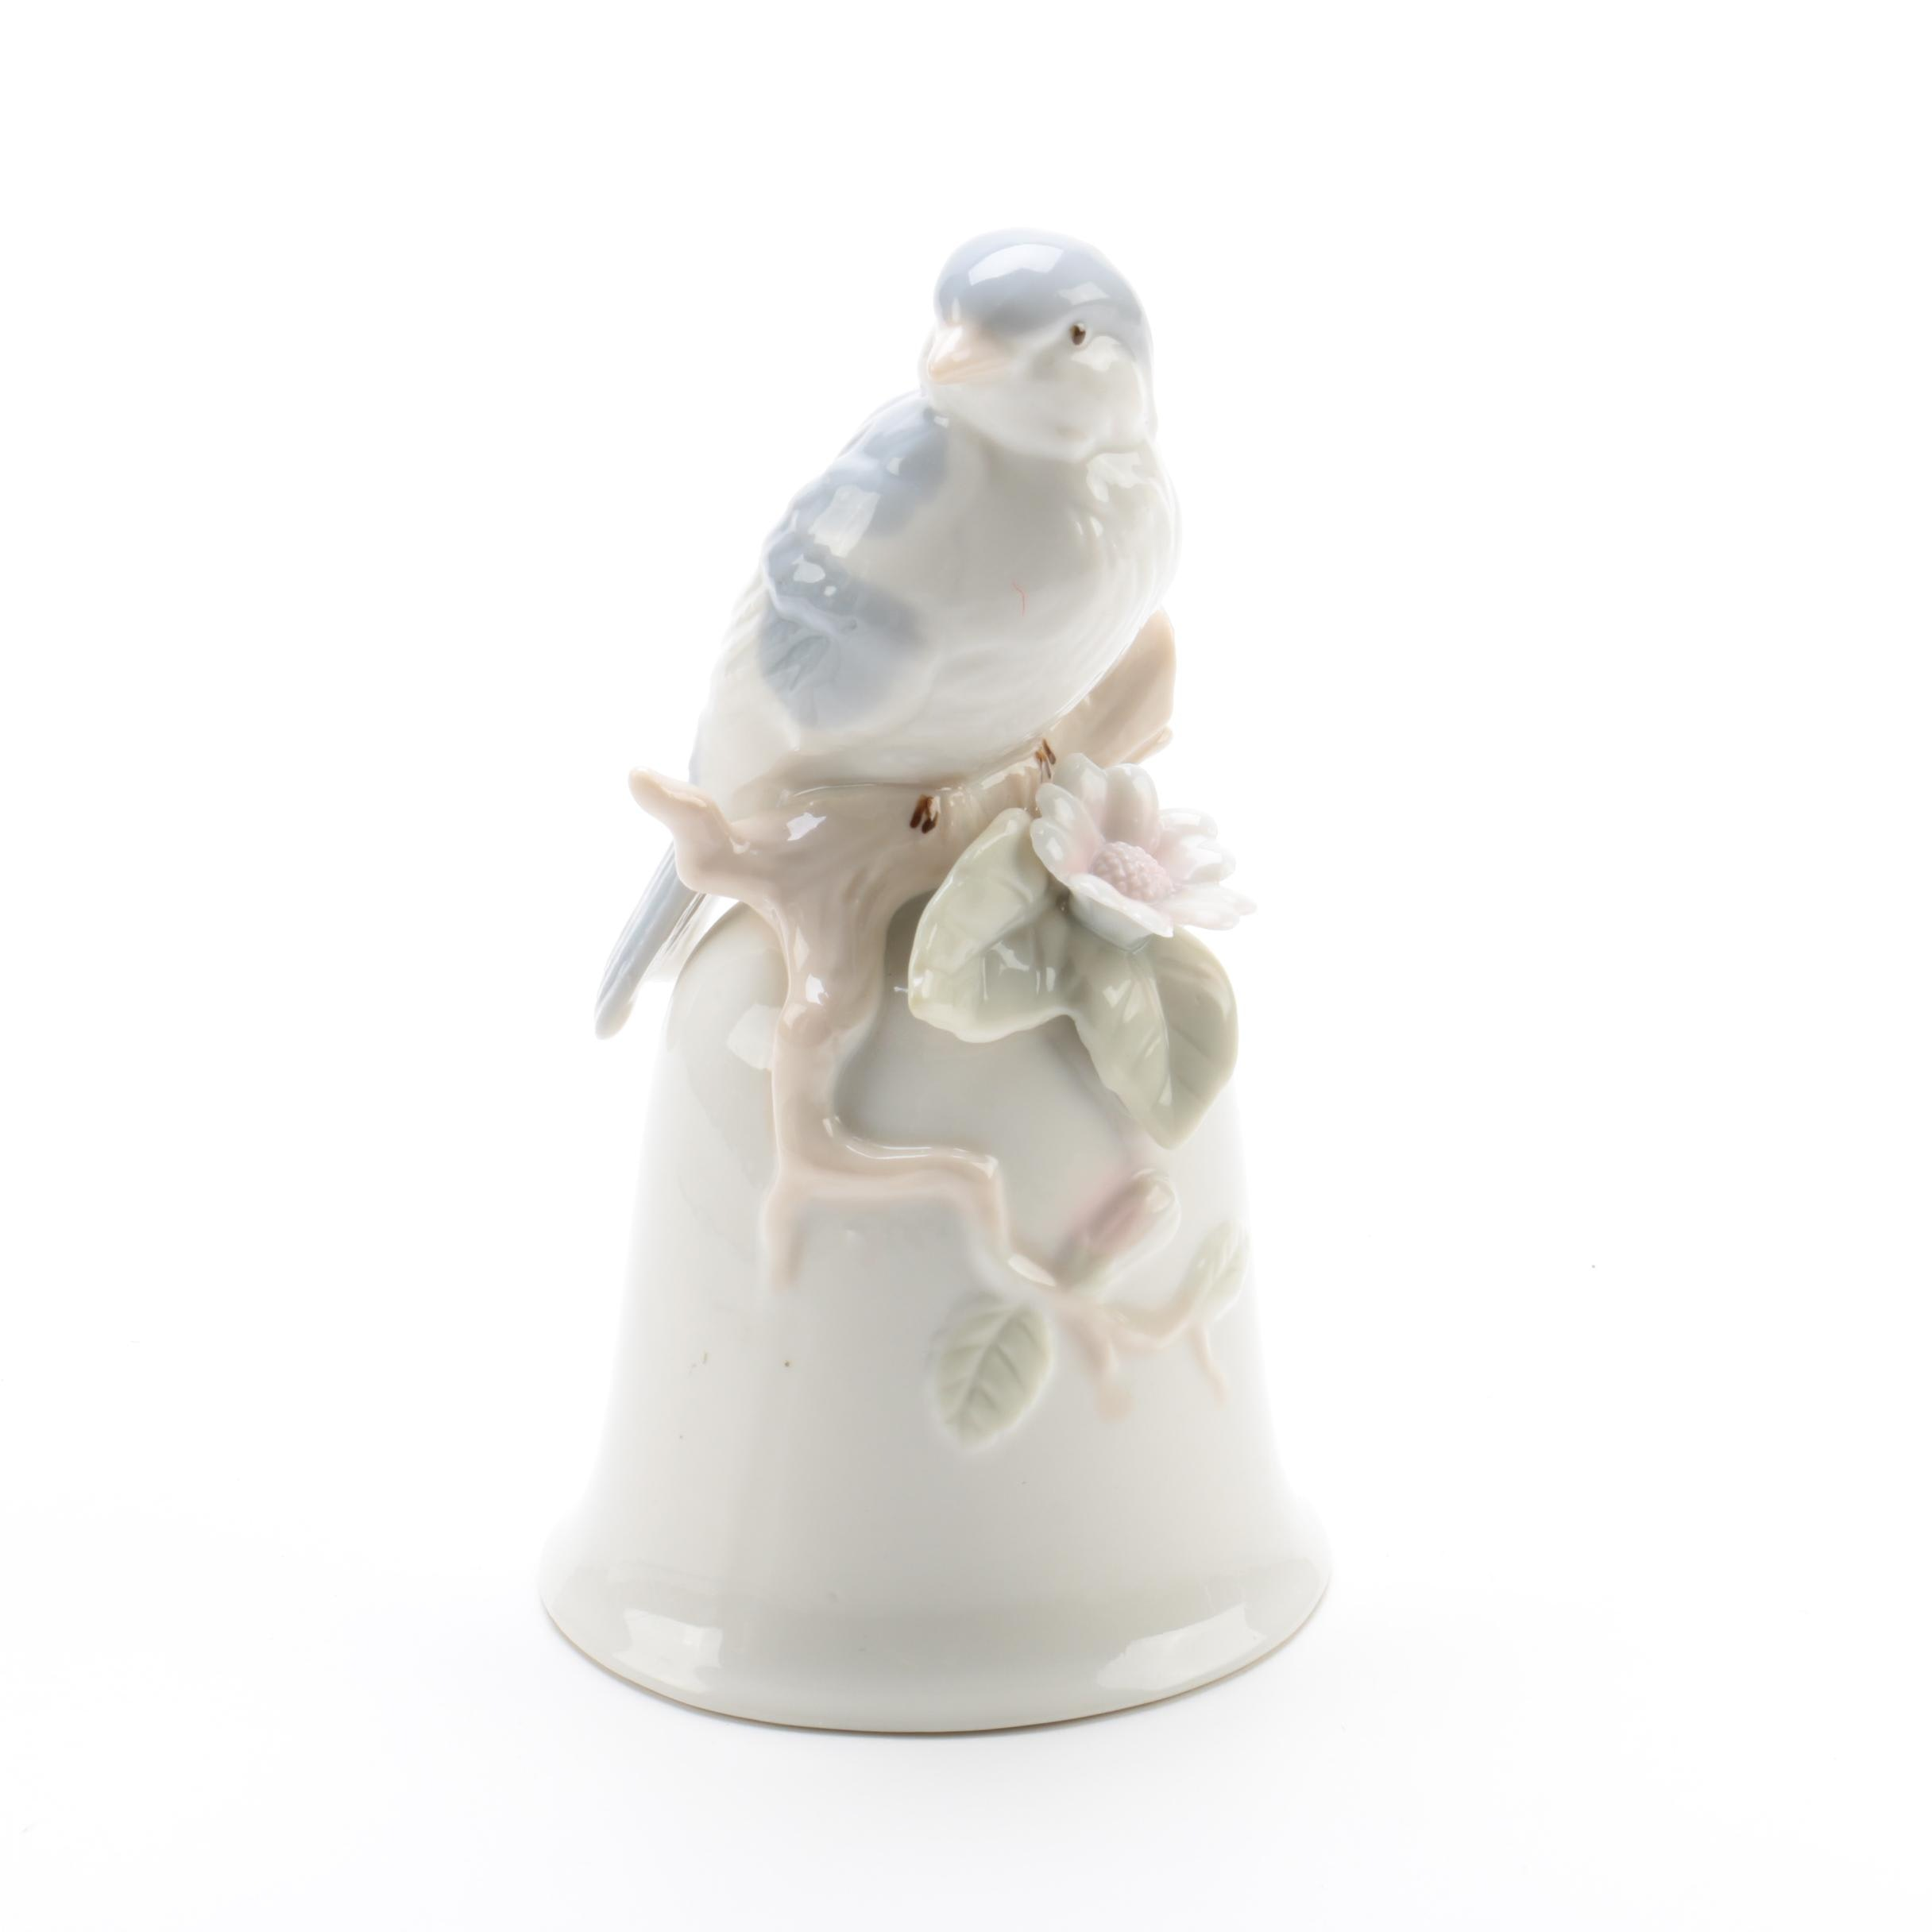 Porcelain Bell Accented with a Bird and Florals